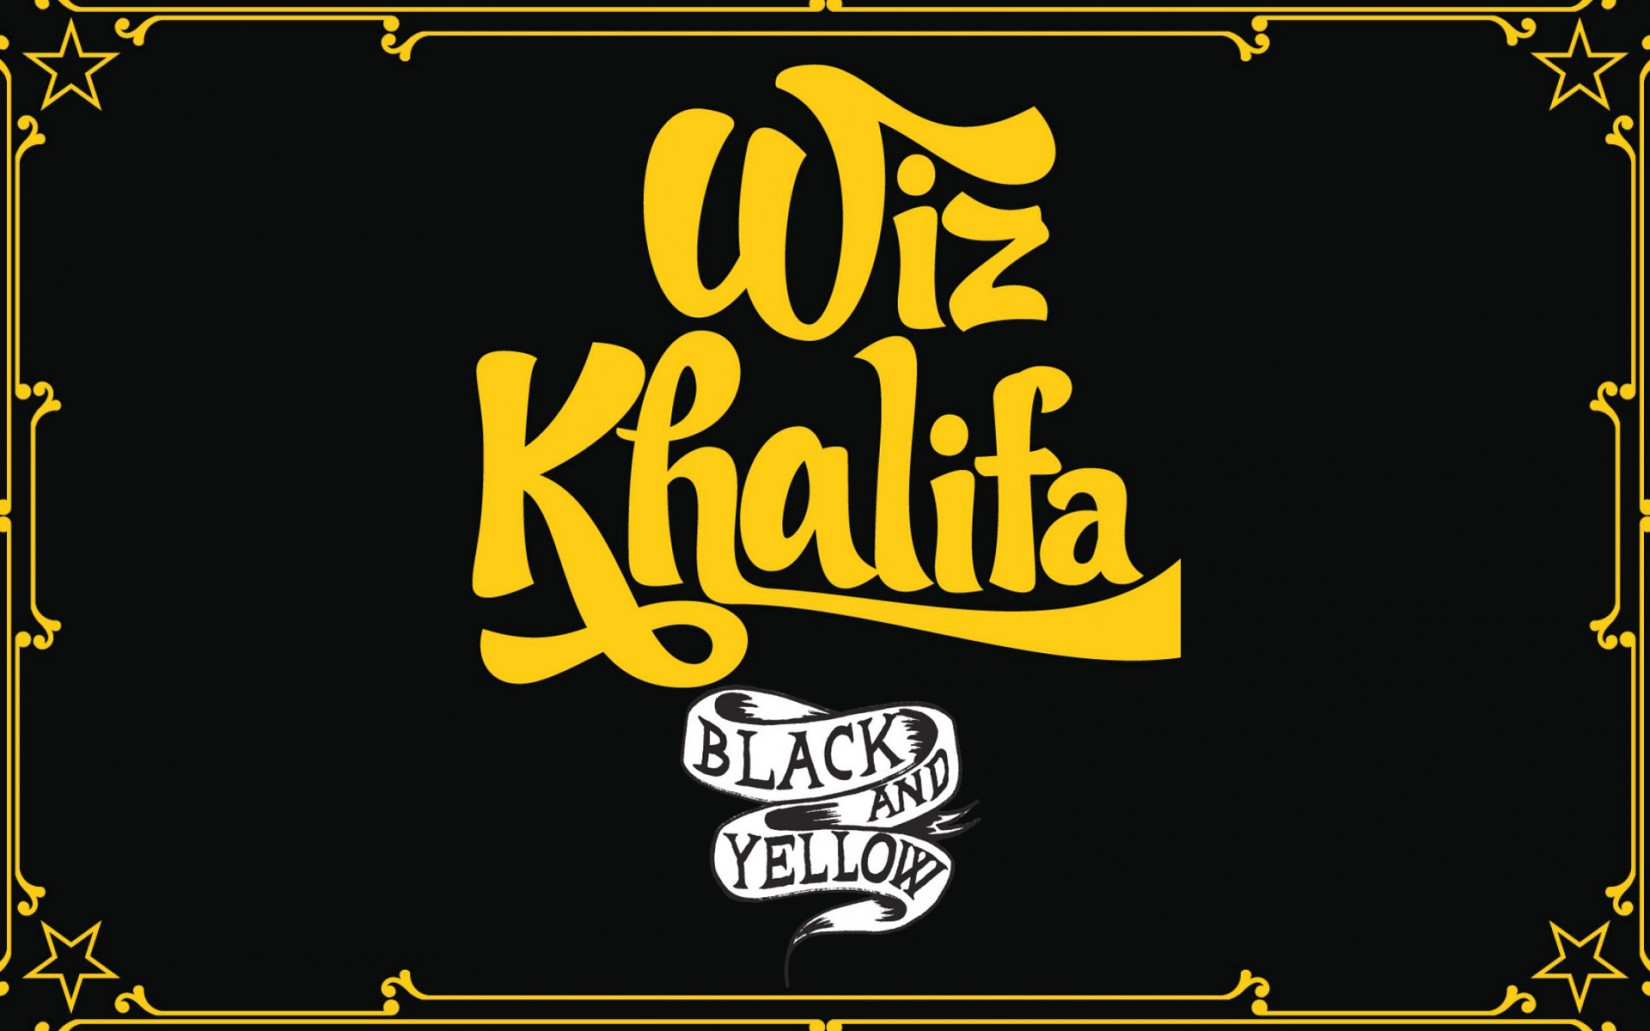 Wiz Khalifa Black and Yellow font